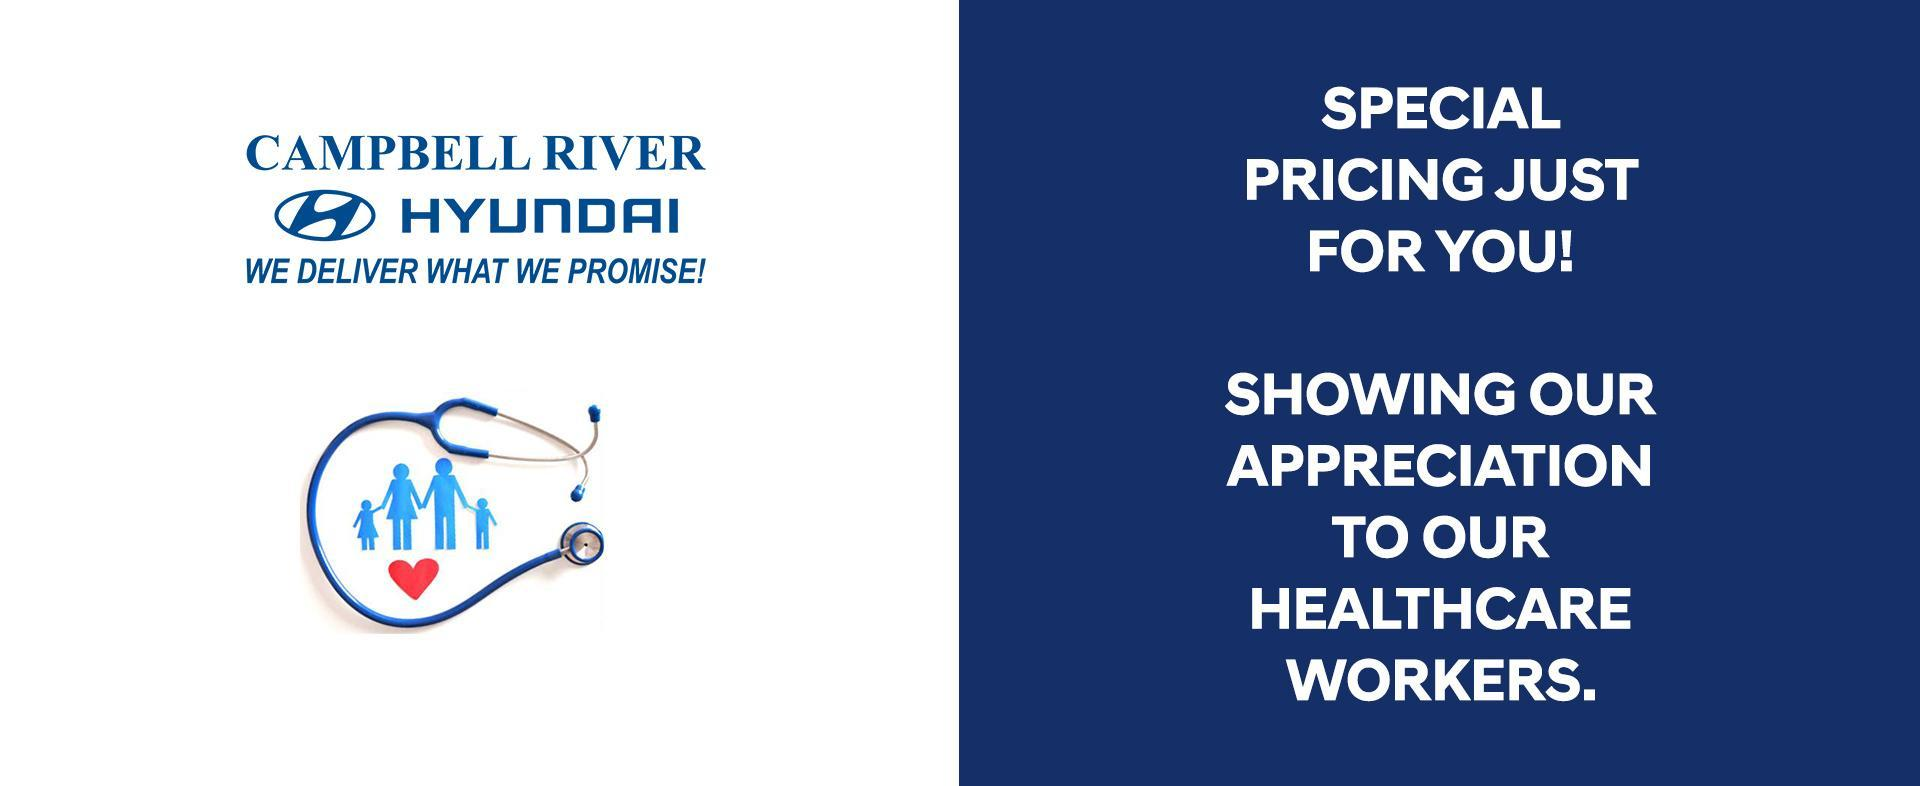 Hero Healthcare Workers | Campbell River Hyundai